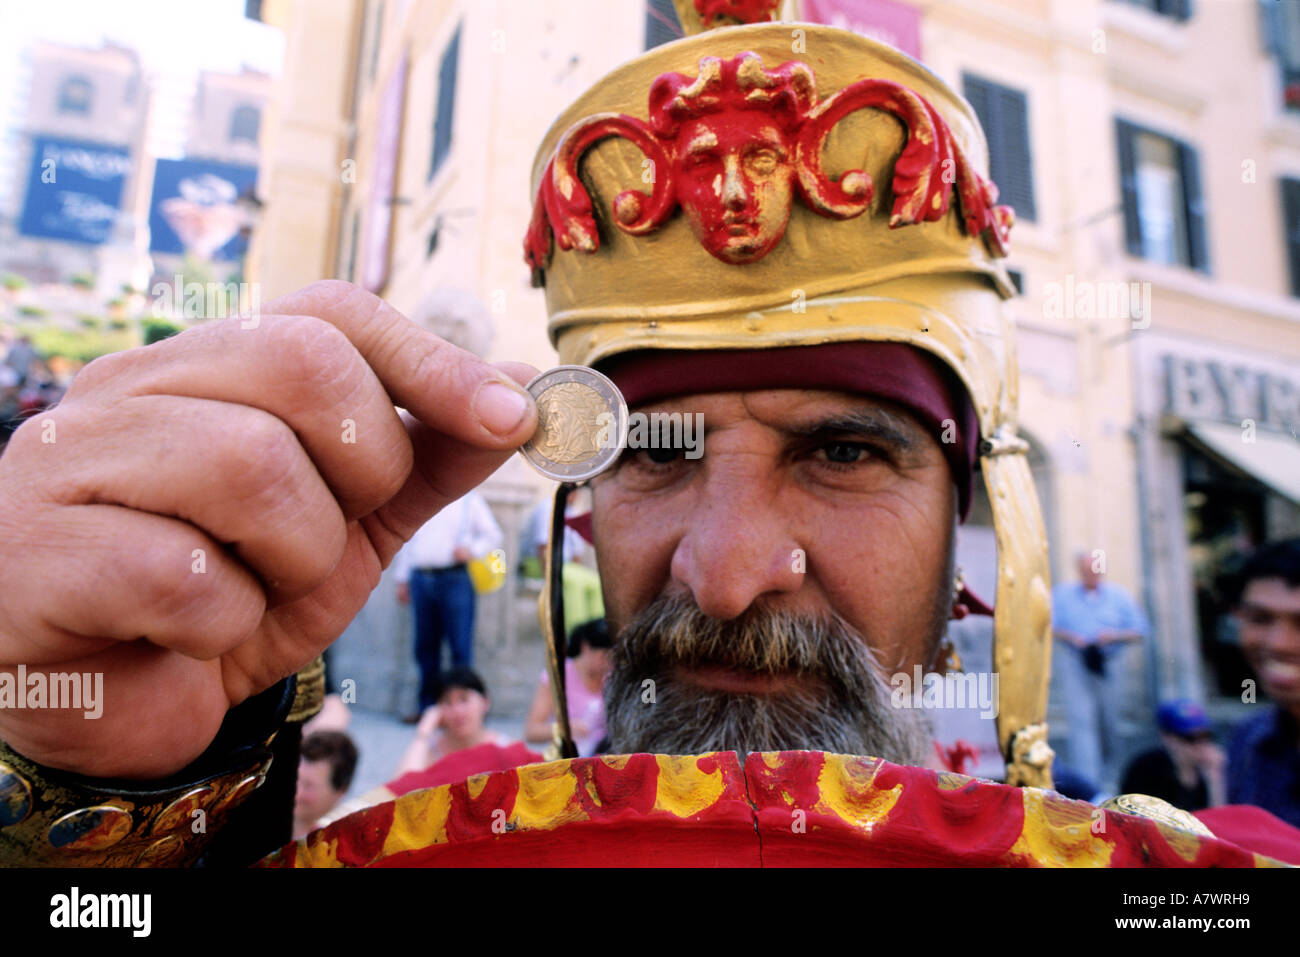 Italy, Lazio, Rome, Espagna square, a man in gladiator dress for pictures with tourists, 2 Euros per picture - Stock Image